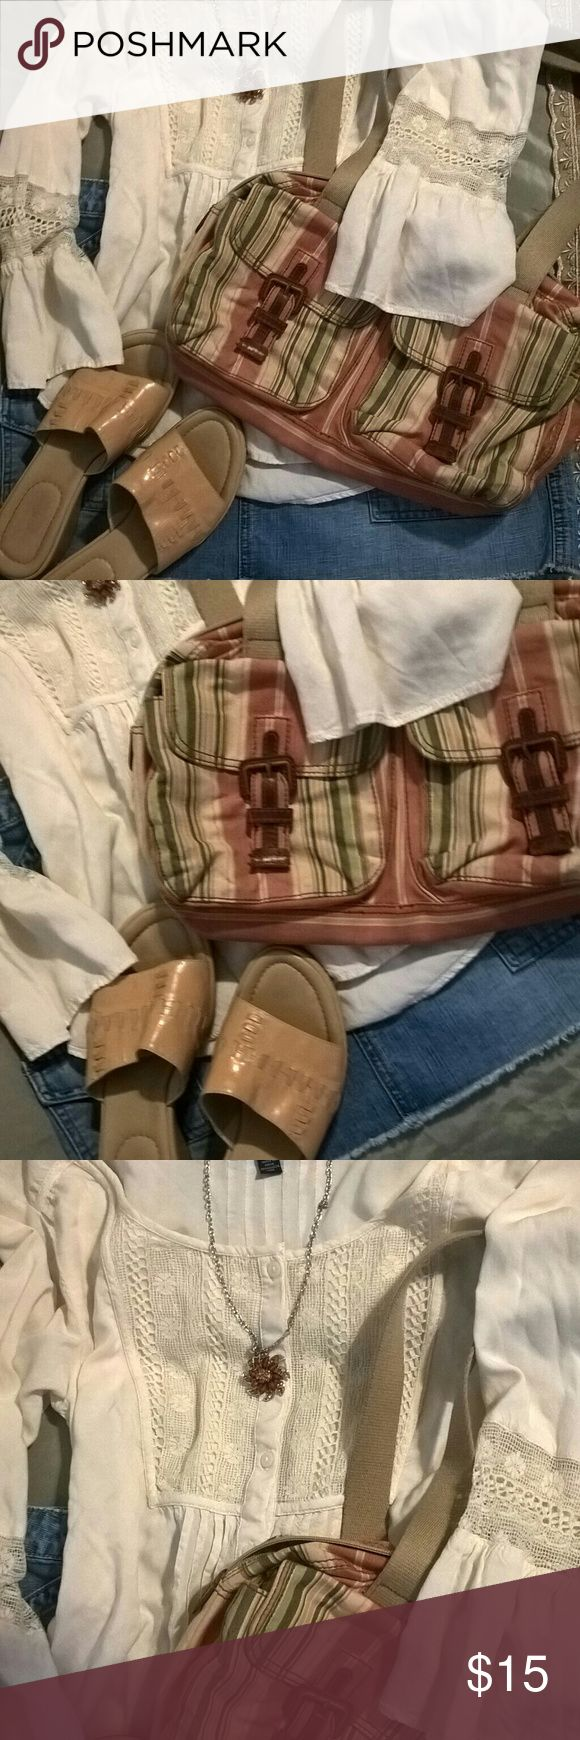 American Eagle Outfitters blouse Beautiful white blouse listed here on its own. This shoes in the purse or listed separately. American Eagle Outfitters Tops Blouses